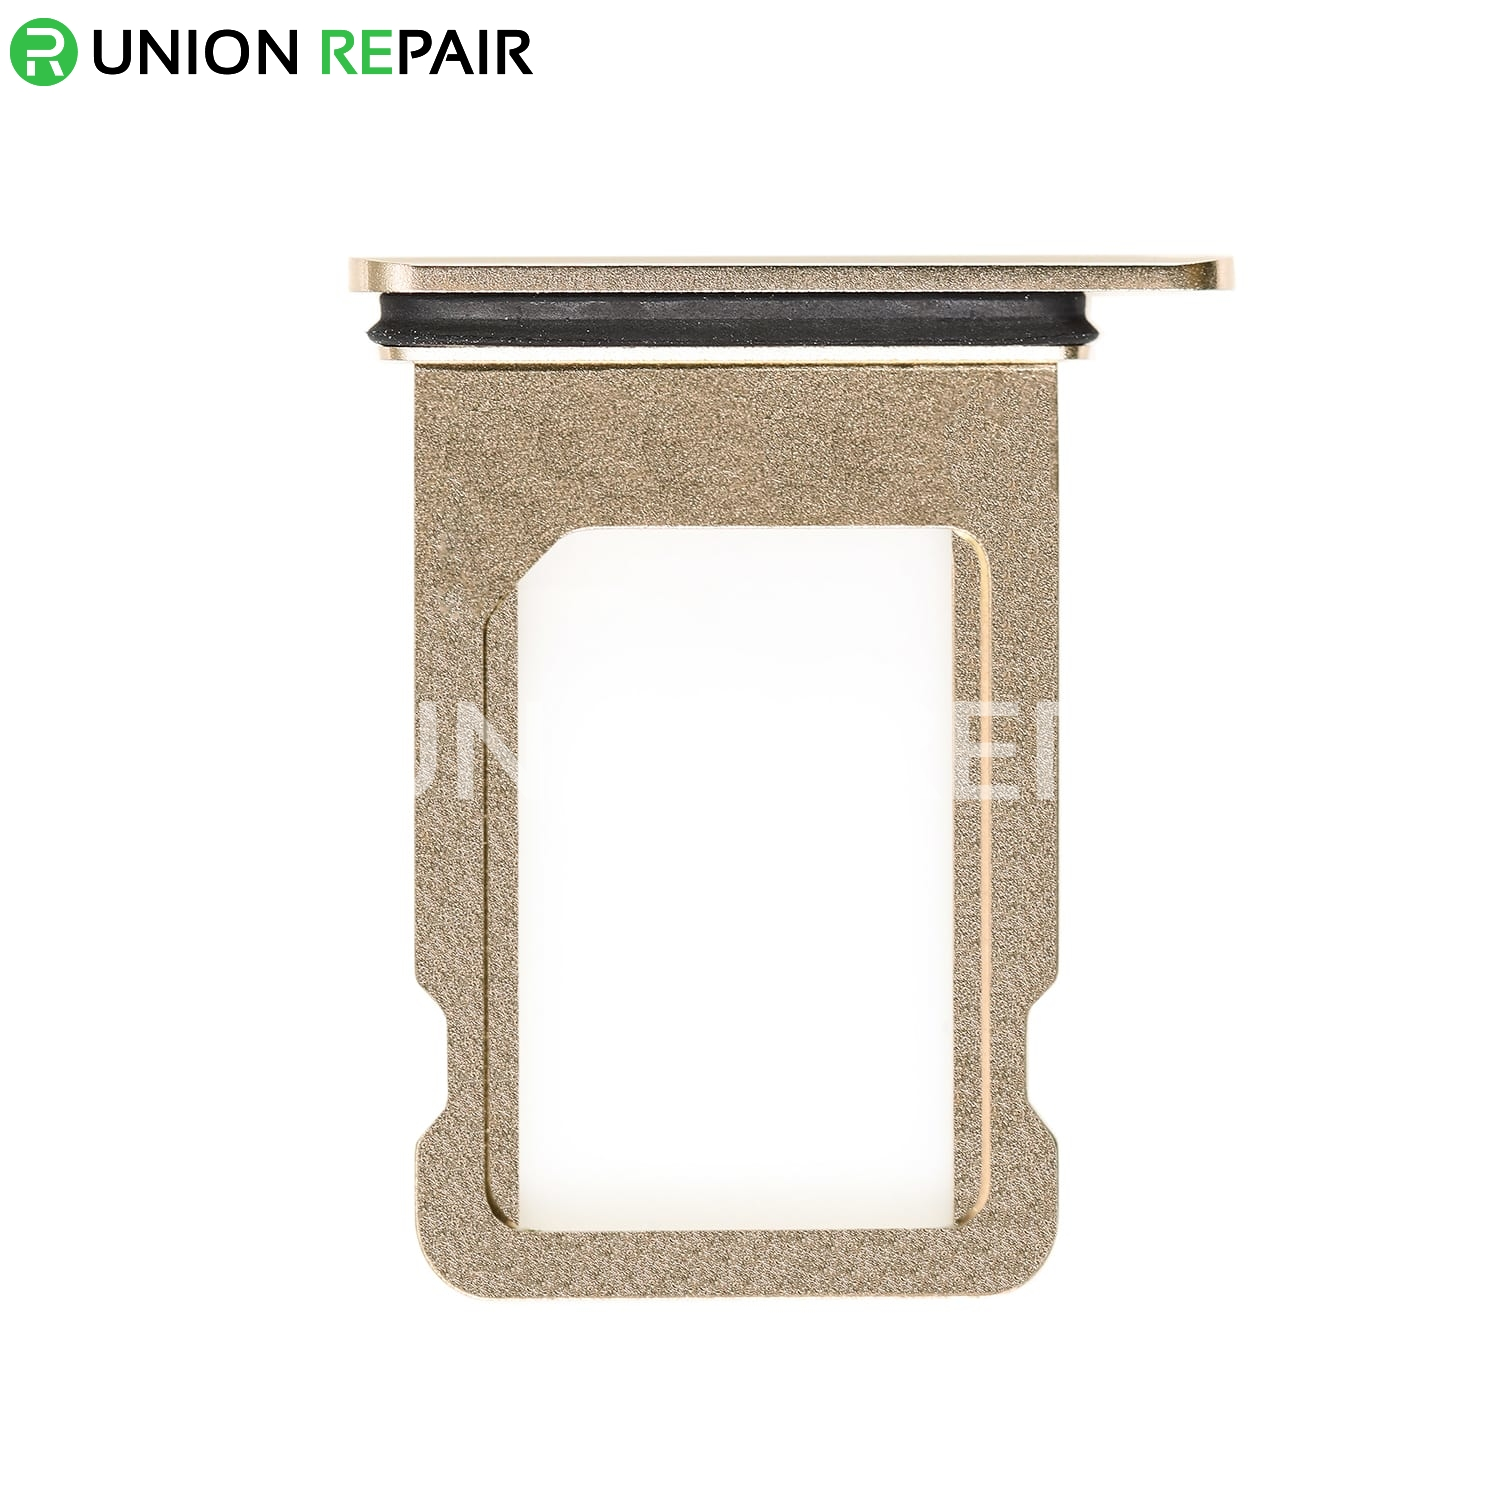 Replacement for iPhone Xs SIM Card Tray - Gold